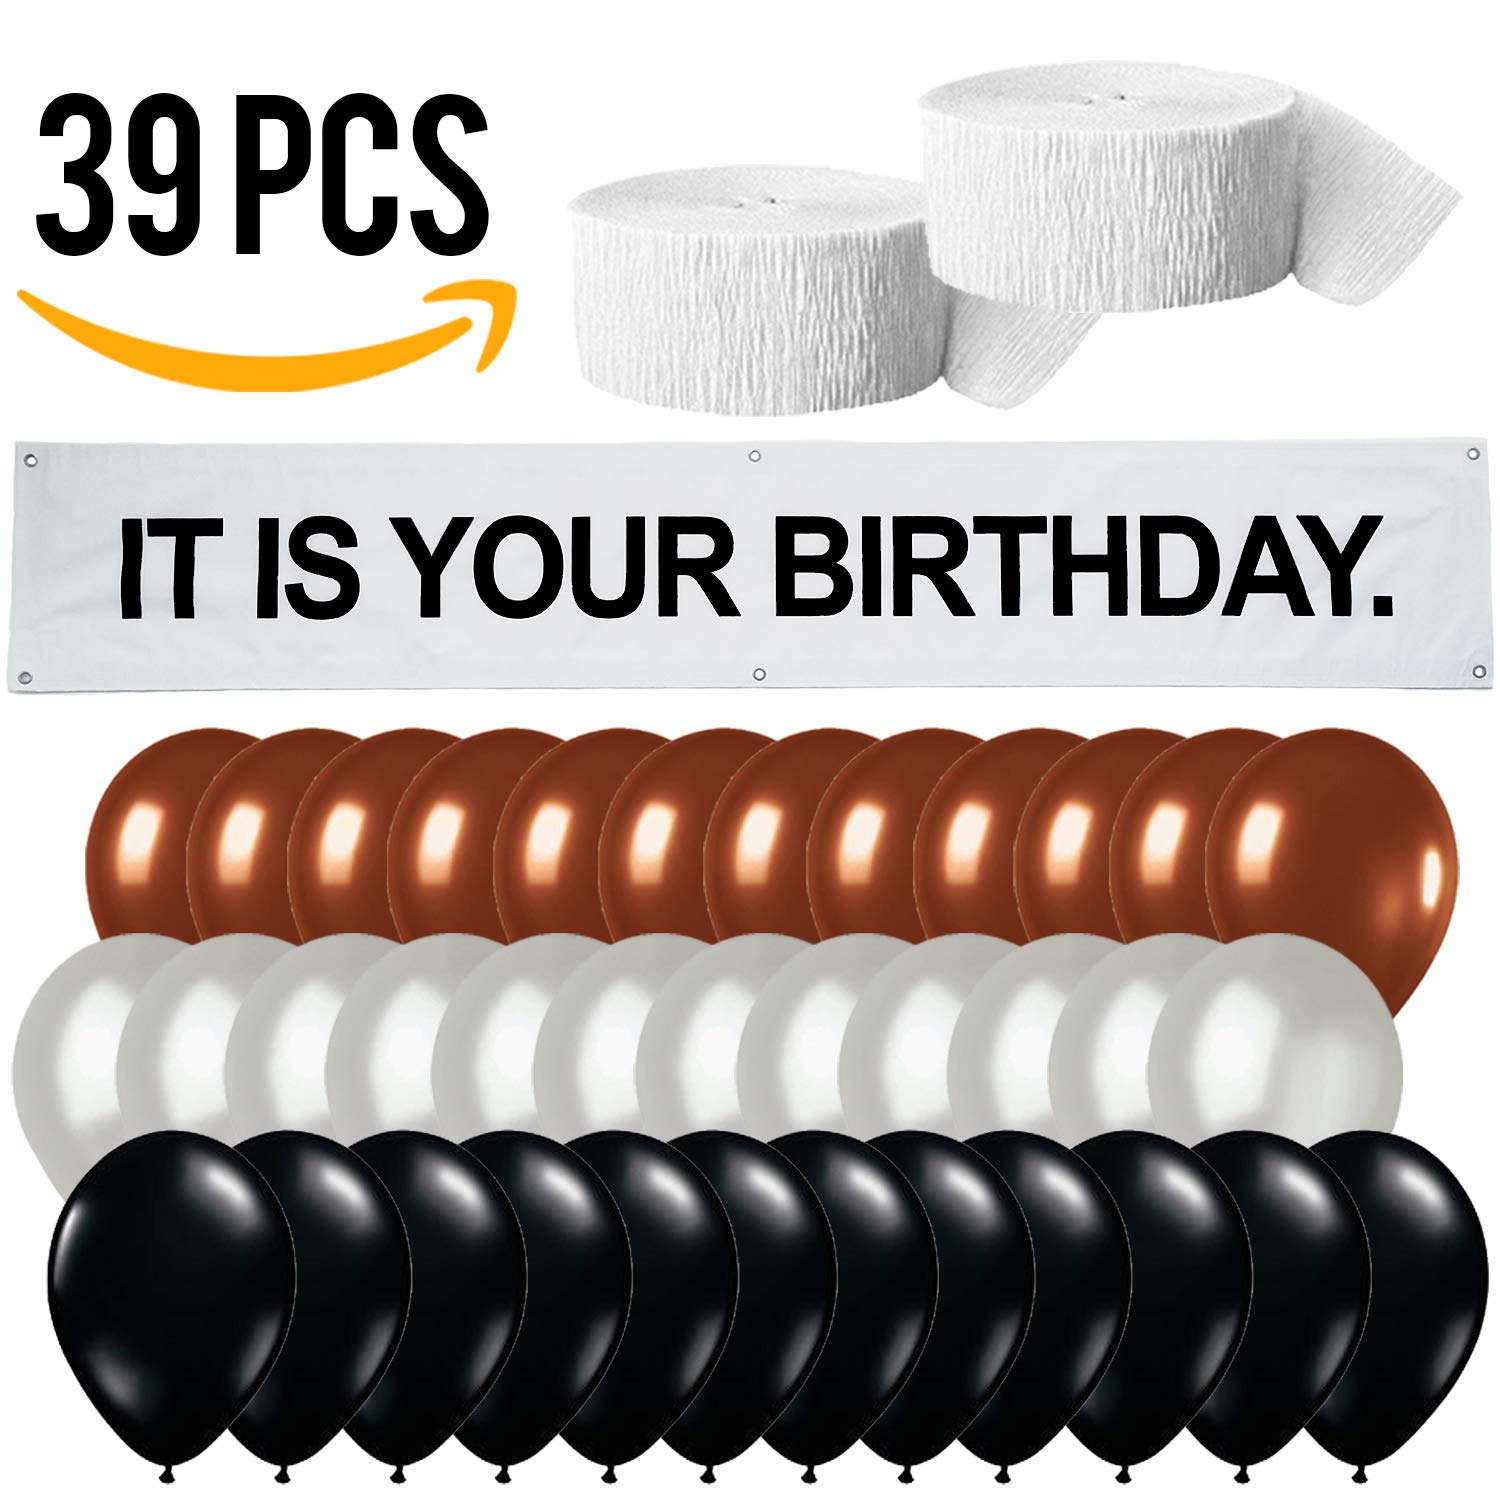 It is Your Birthday. Banner • The Office Birthday Decorations • Dwight Schrute Birthday Set | Banner + Brown, Black, Silver Balloons + White Crepe Streamers